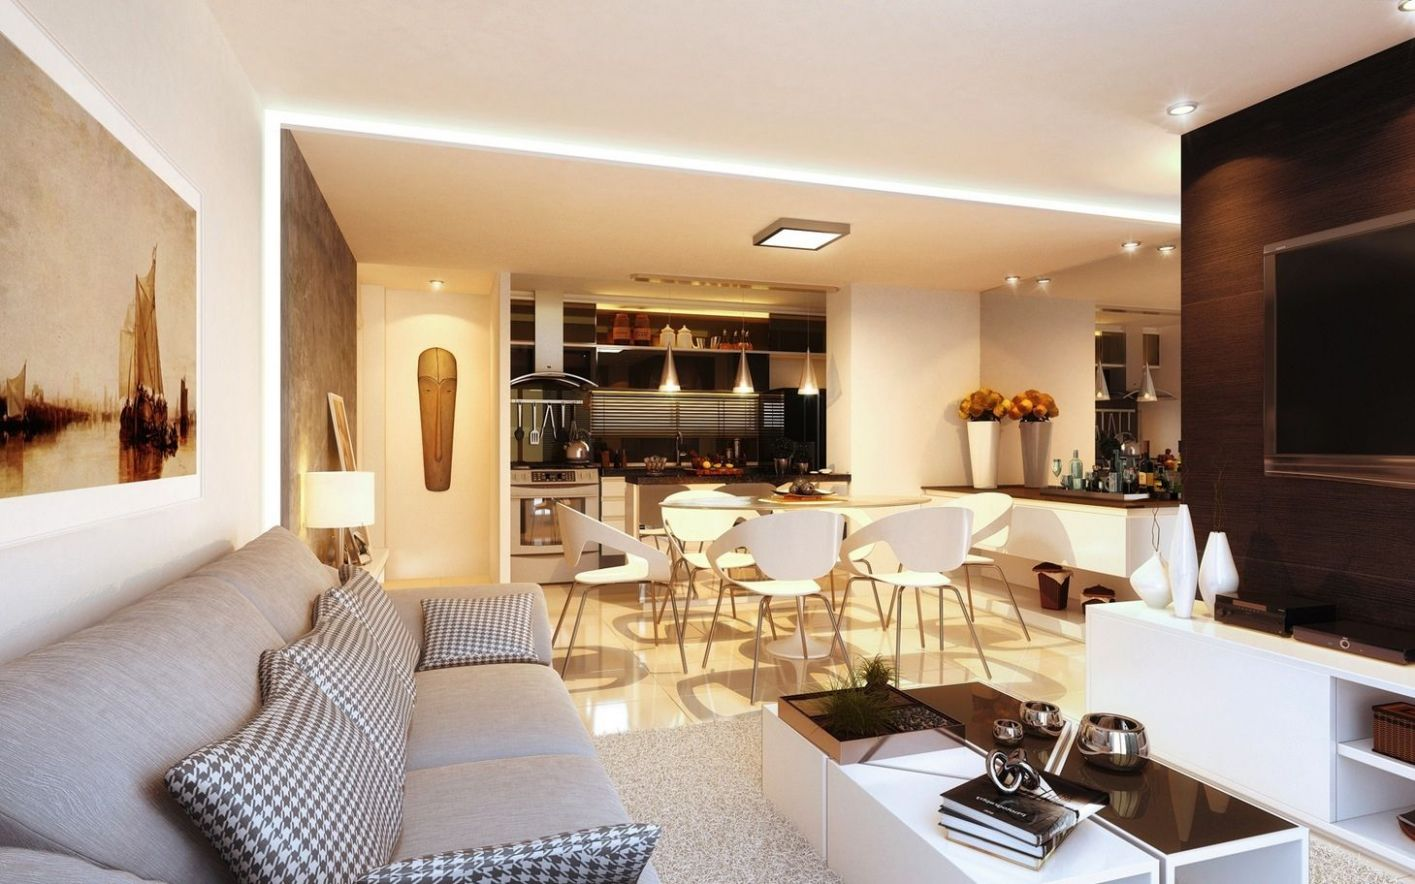 11 Open Concept Apartment Interiors For Inspiration | Open plan ..